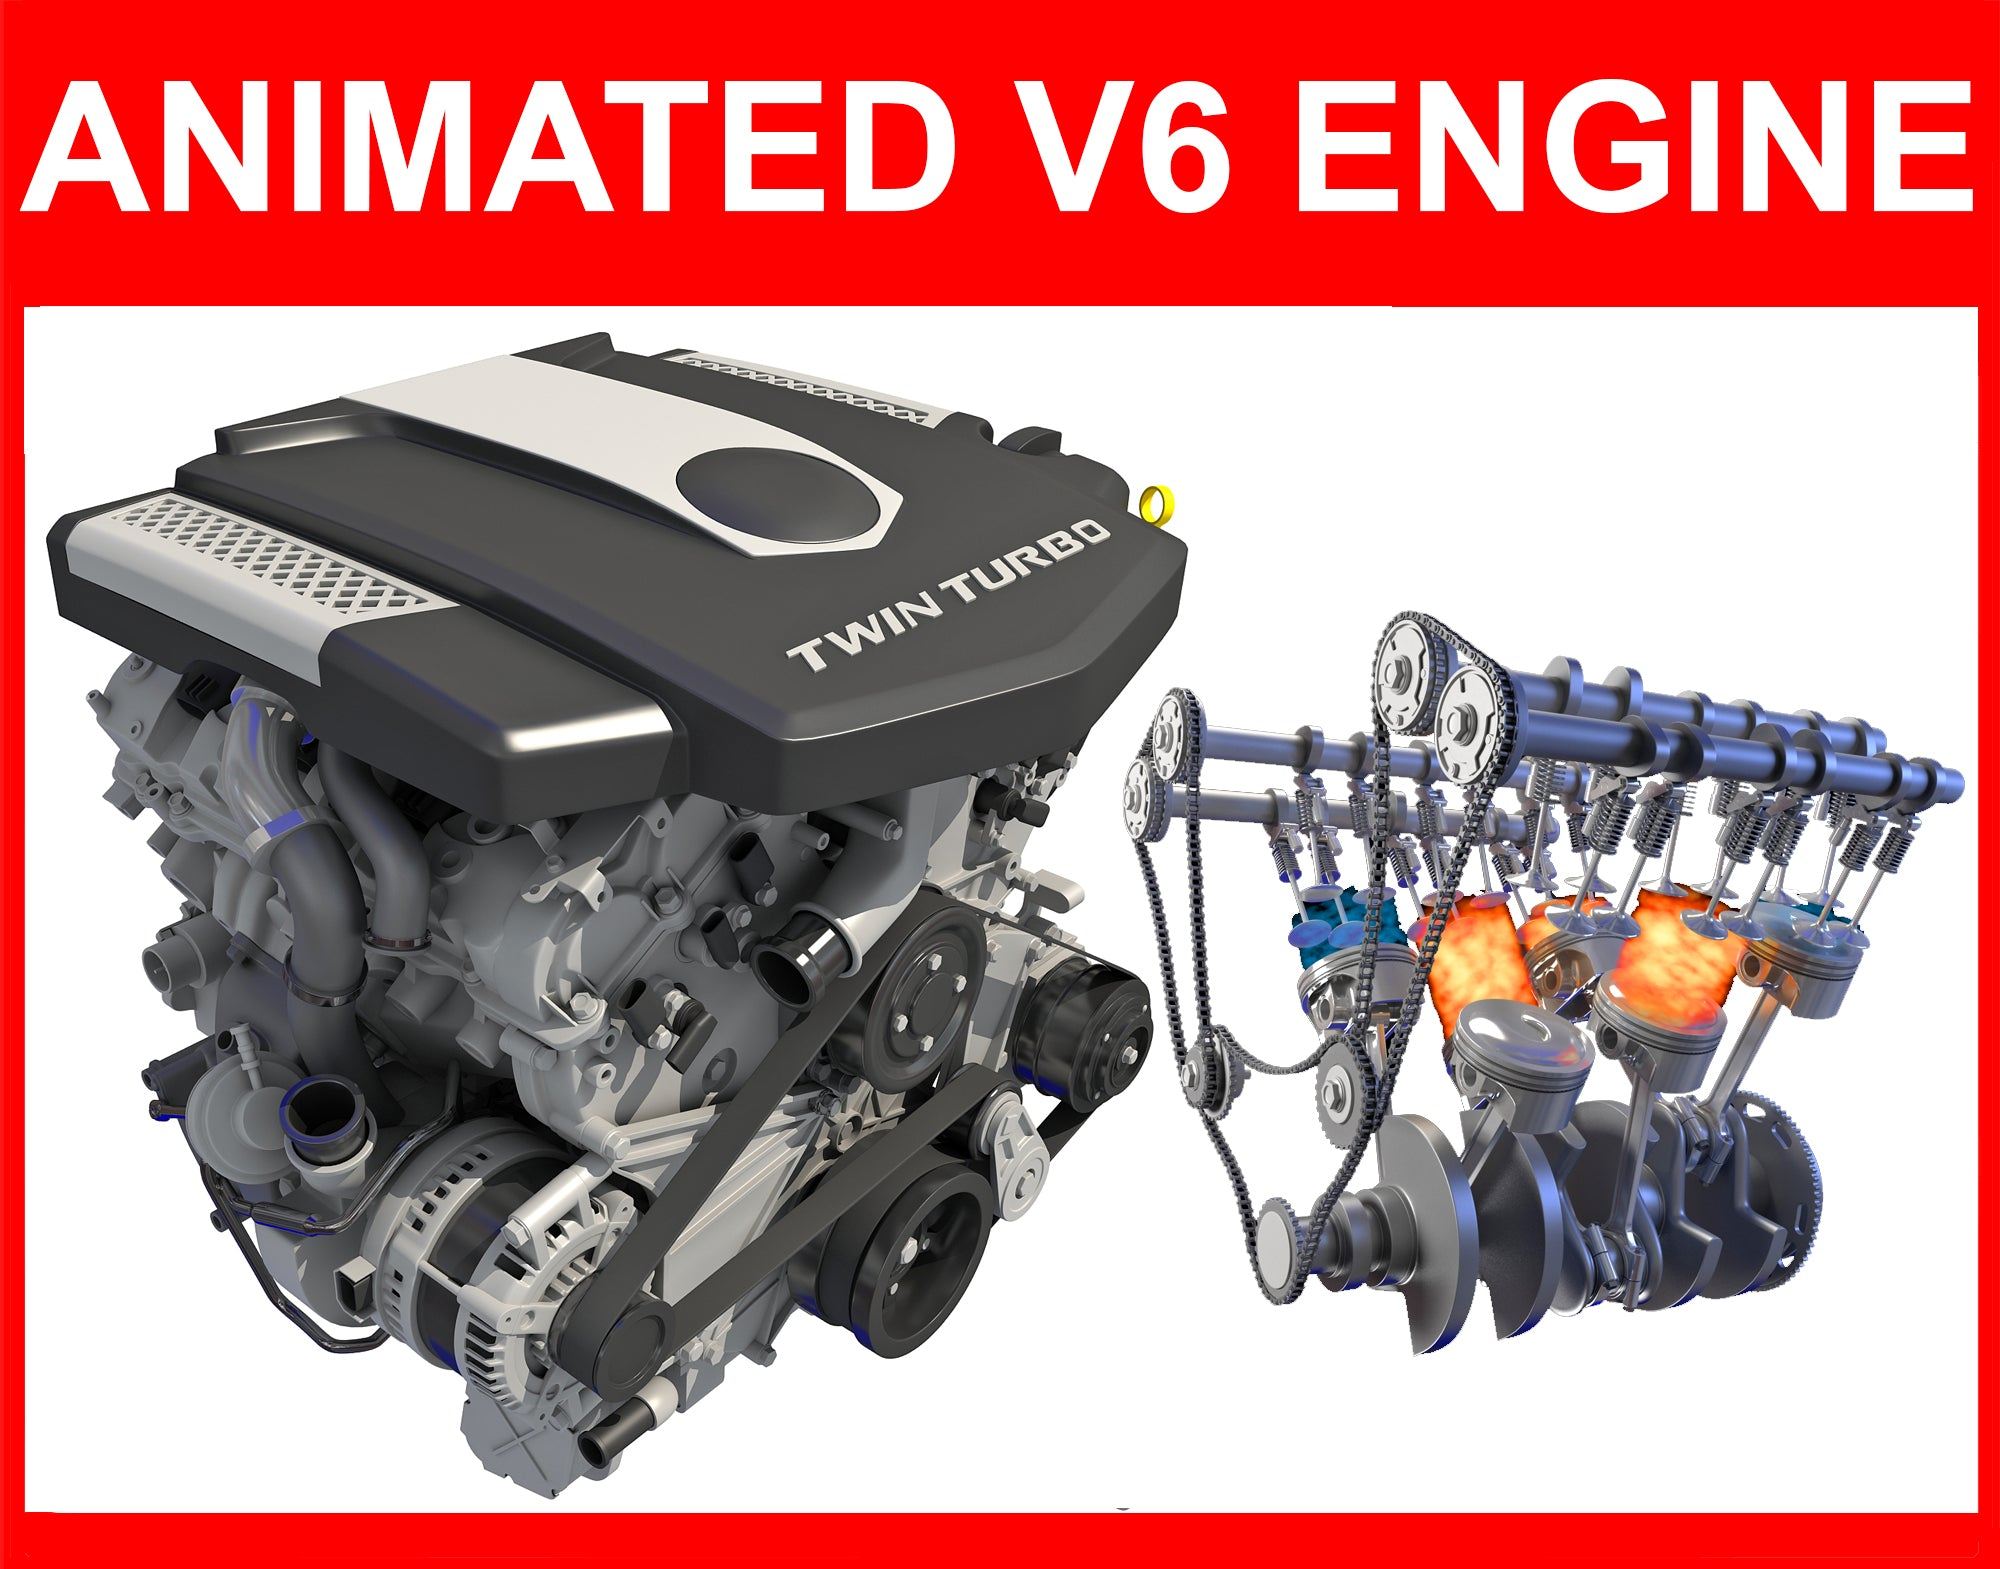 Animated V6 Engine with Ignition